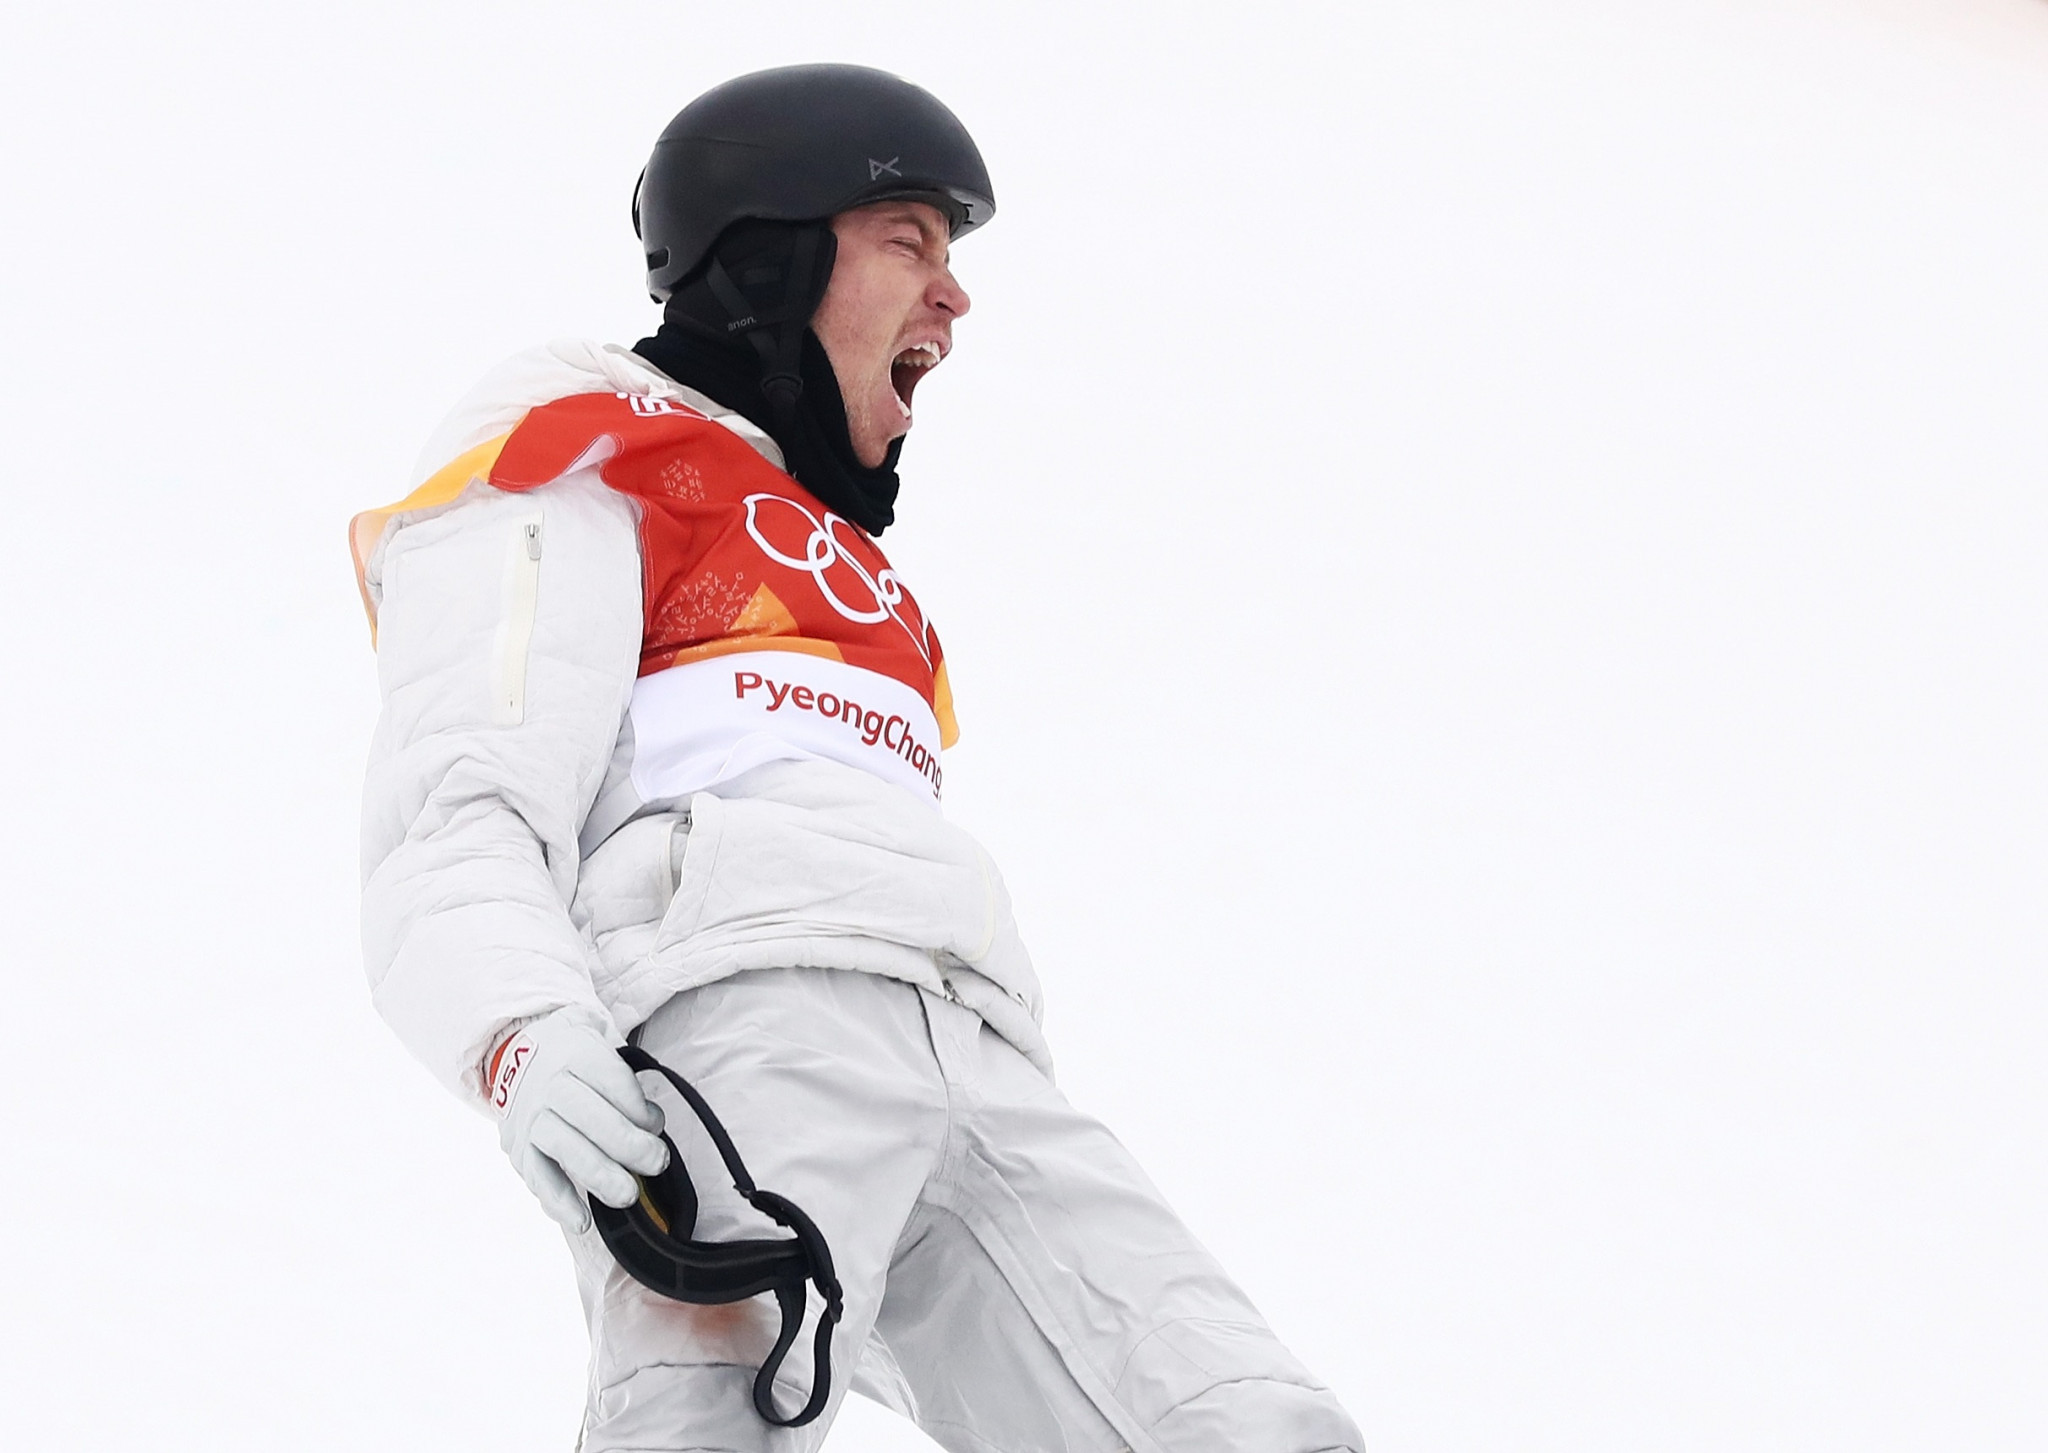 Shaun White claimed his third Olympic halfpipe snowboarding title at Pyeongchang 2018 today to secure the United States' 100th gold medal at the Winter Games ©Getty Images